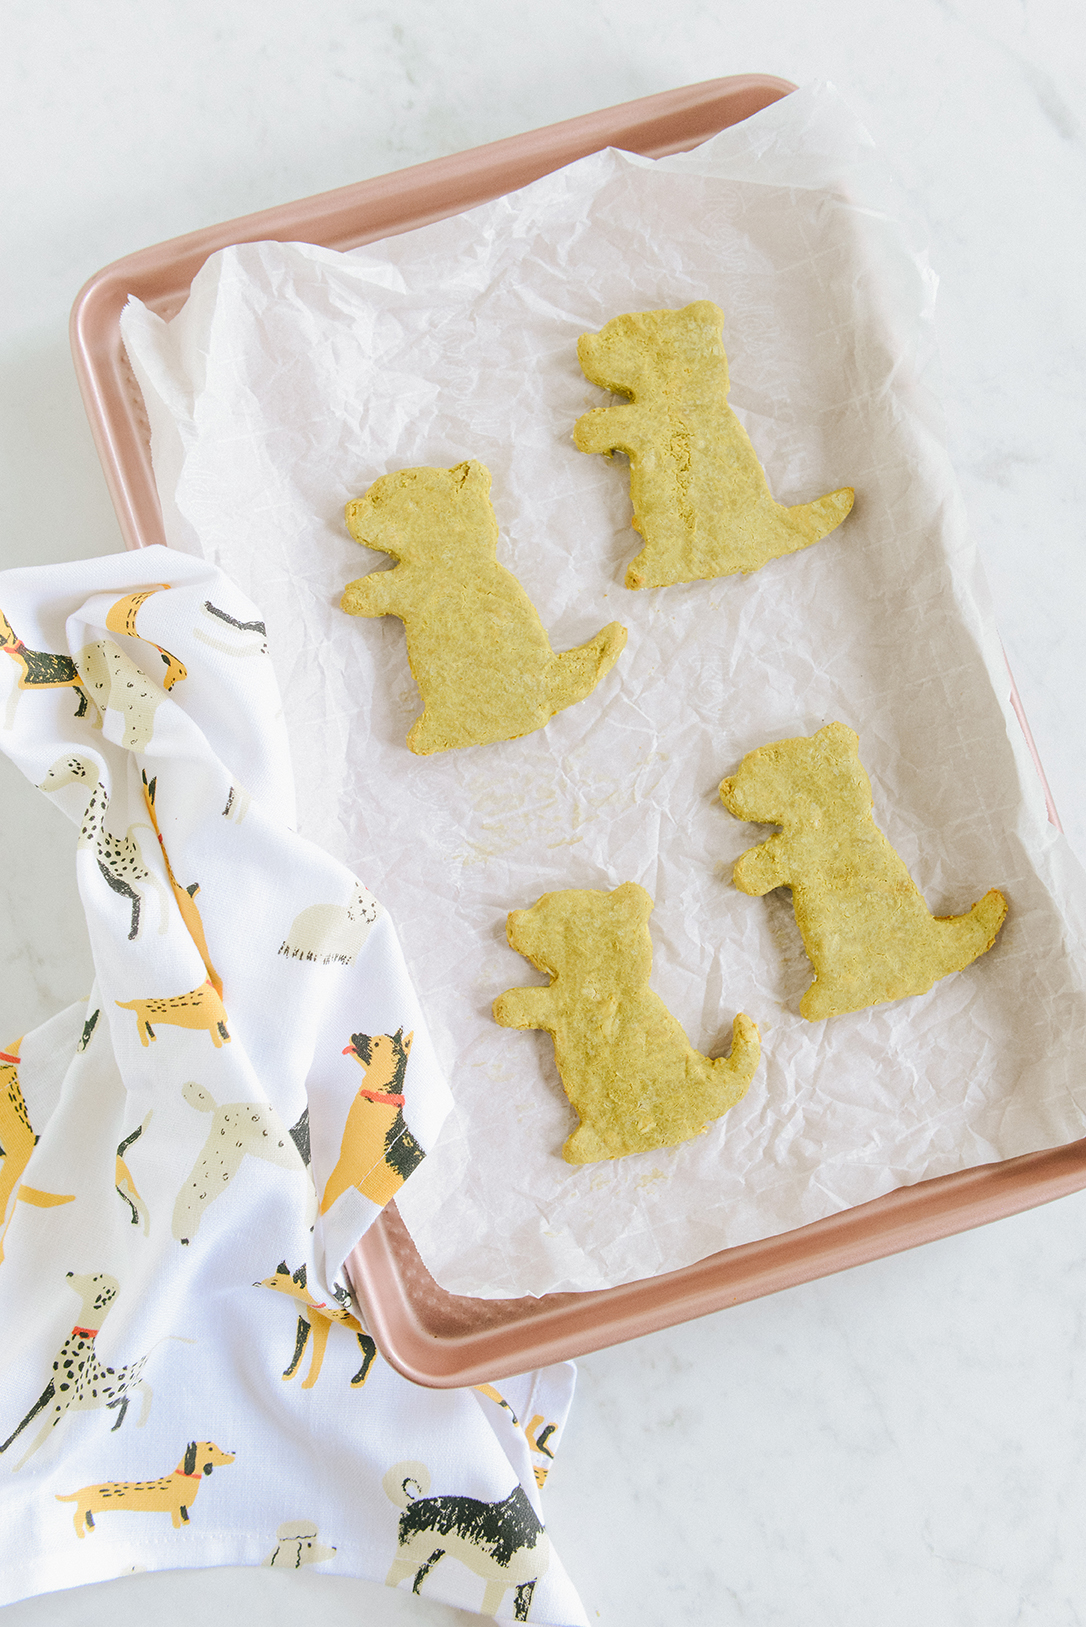 Gluten Free Dog Treats + Happy Groundhog Day 2019